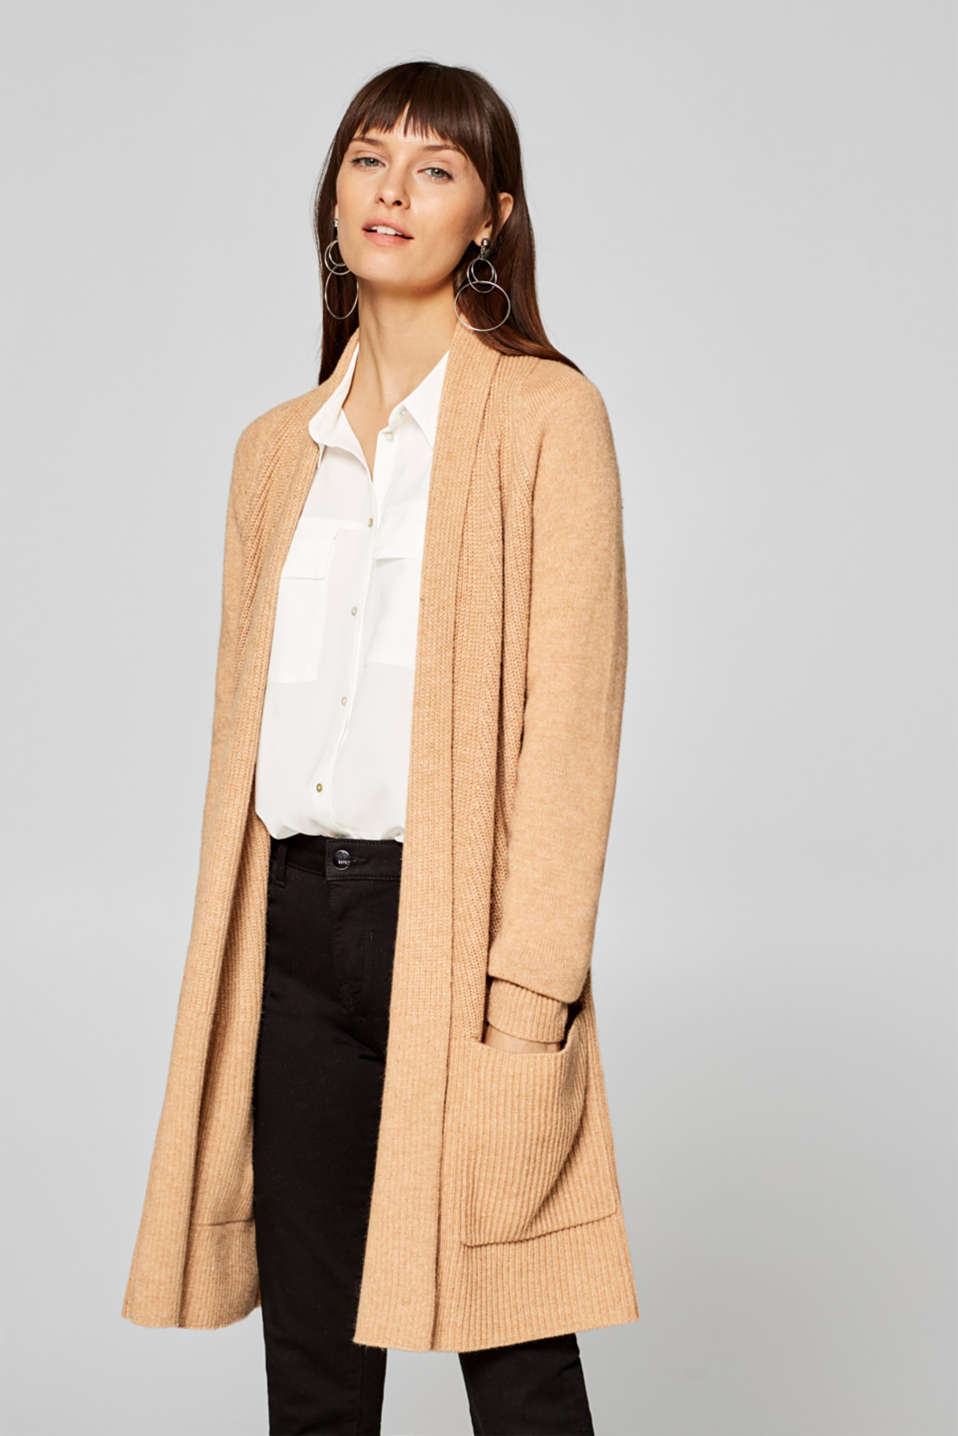 Esprit - Made of blended wool: cardigan with a shawl collar